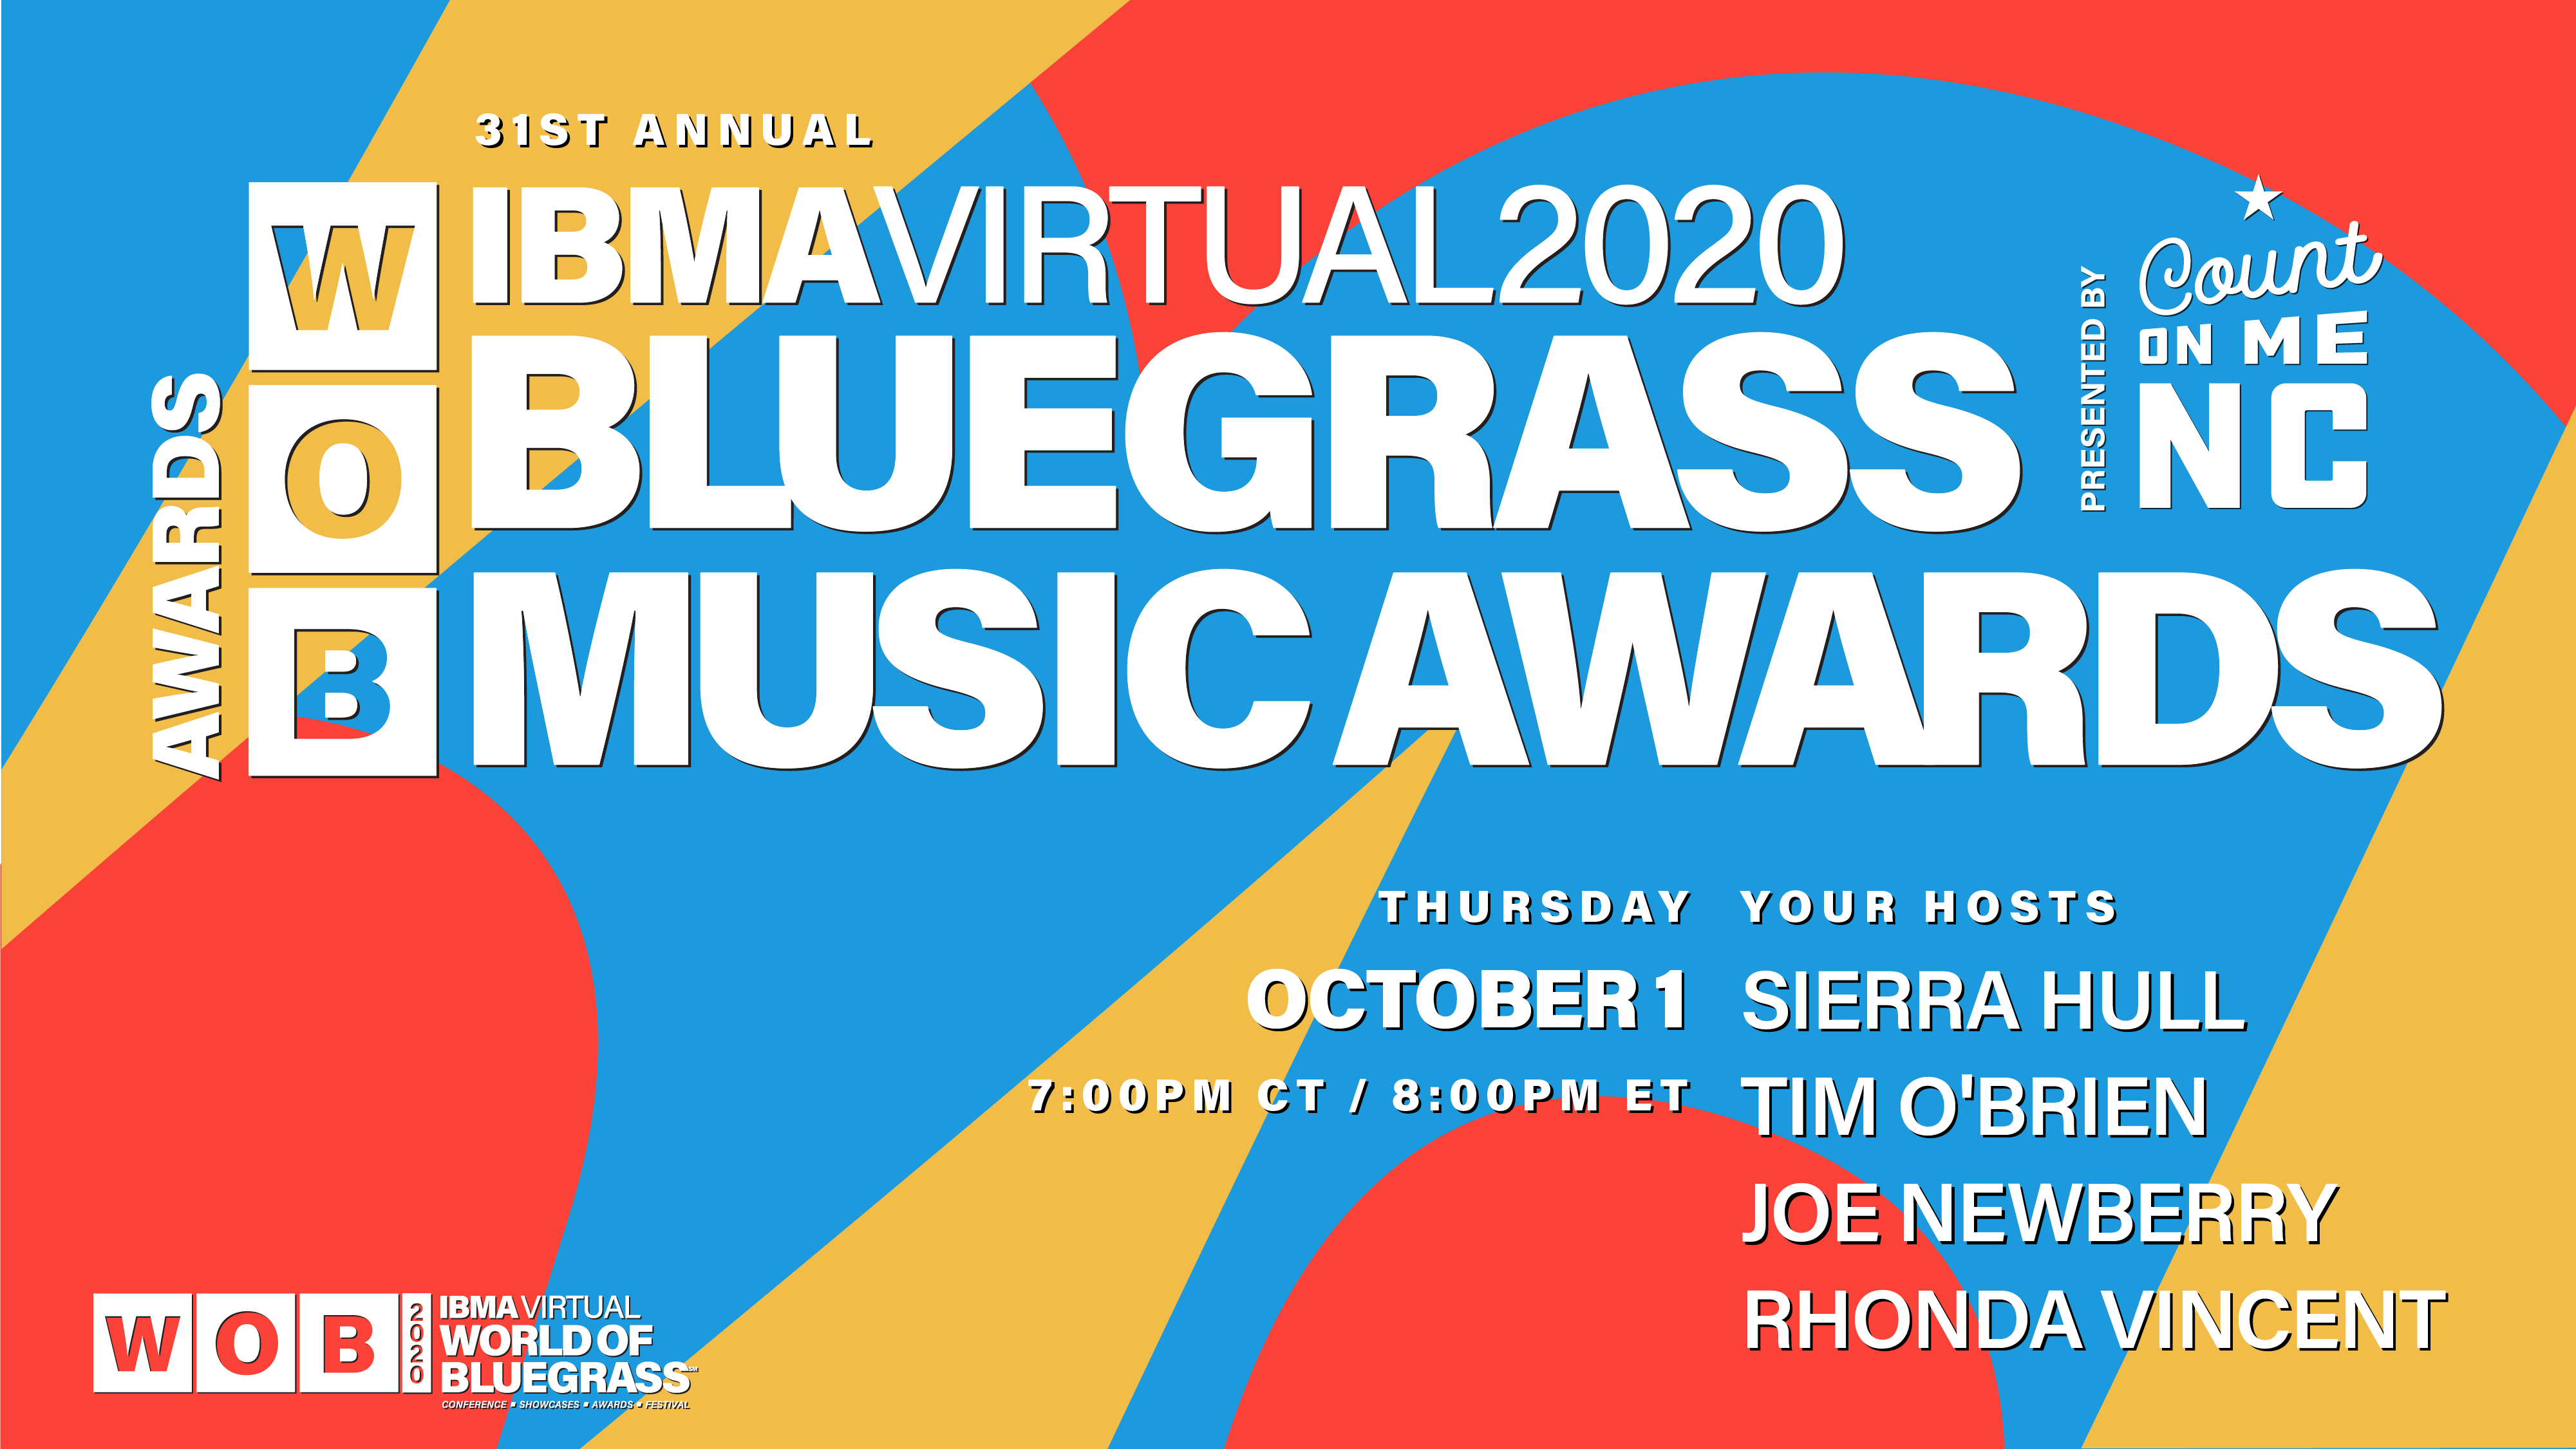 IBMA Awards 2020: See the Full List of Winners